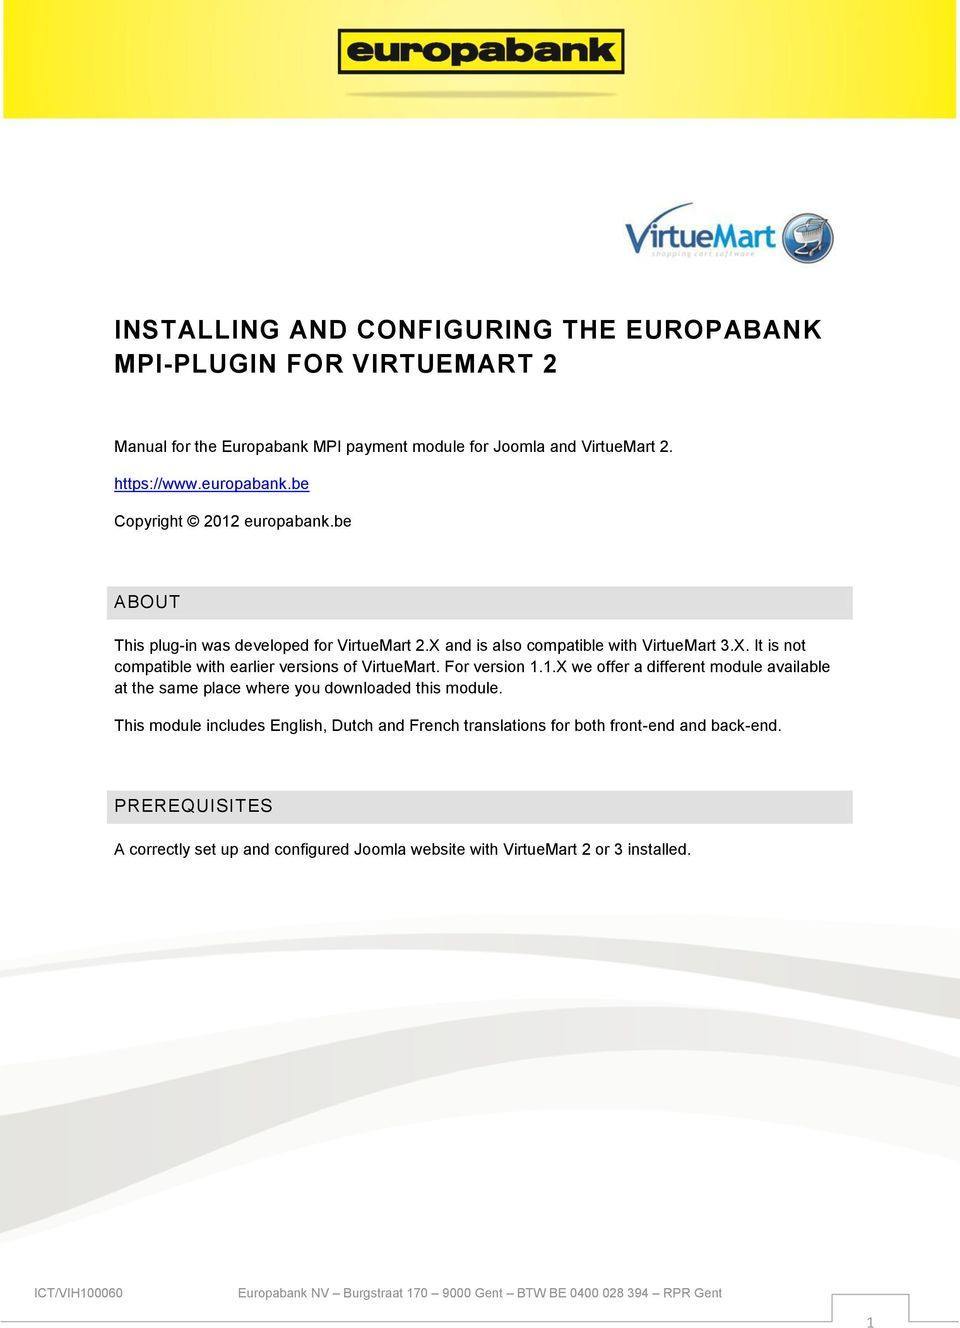 INSTALLING AND CONFIGURING THE EUROPABANK MPI-PLUGIN FOR VIRTUEMART